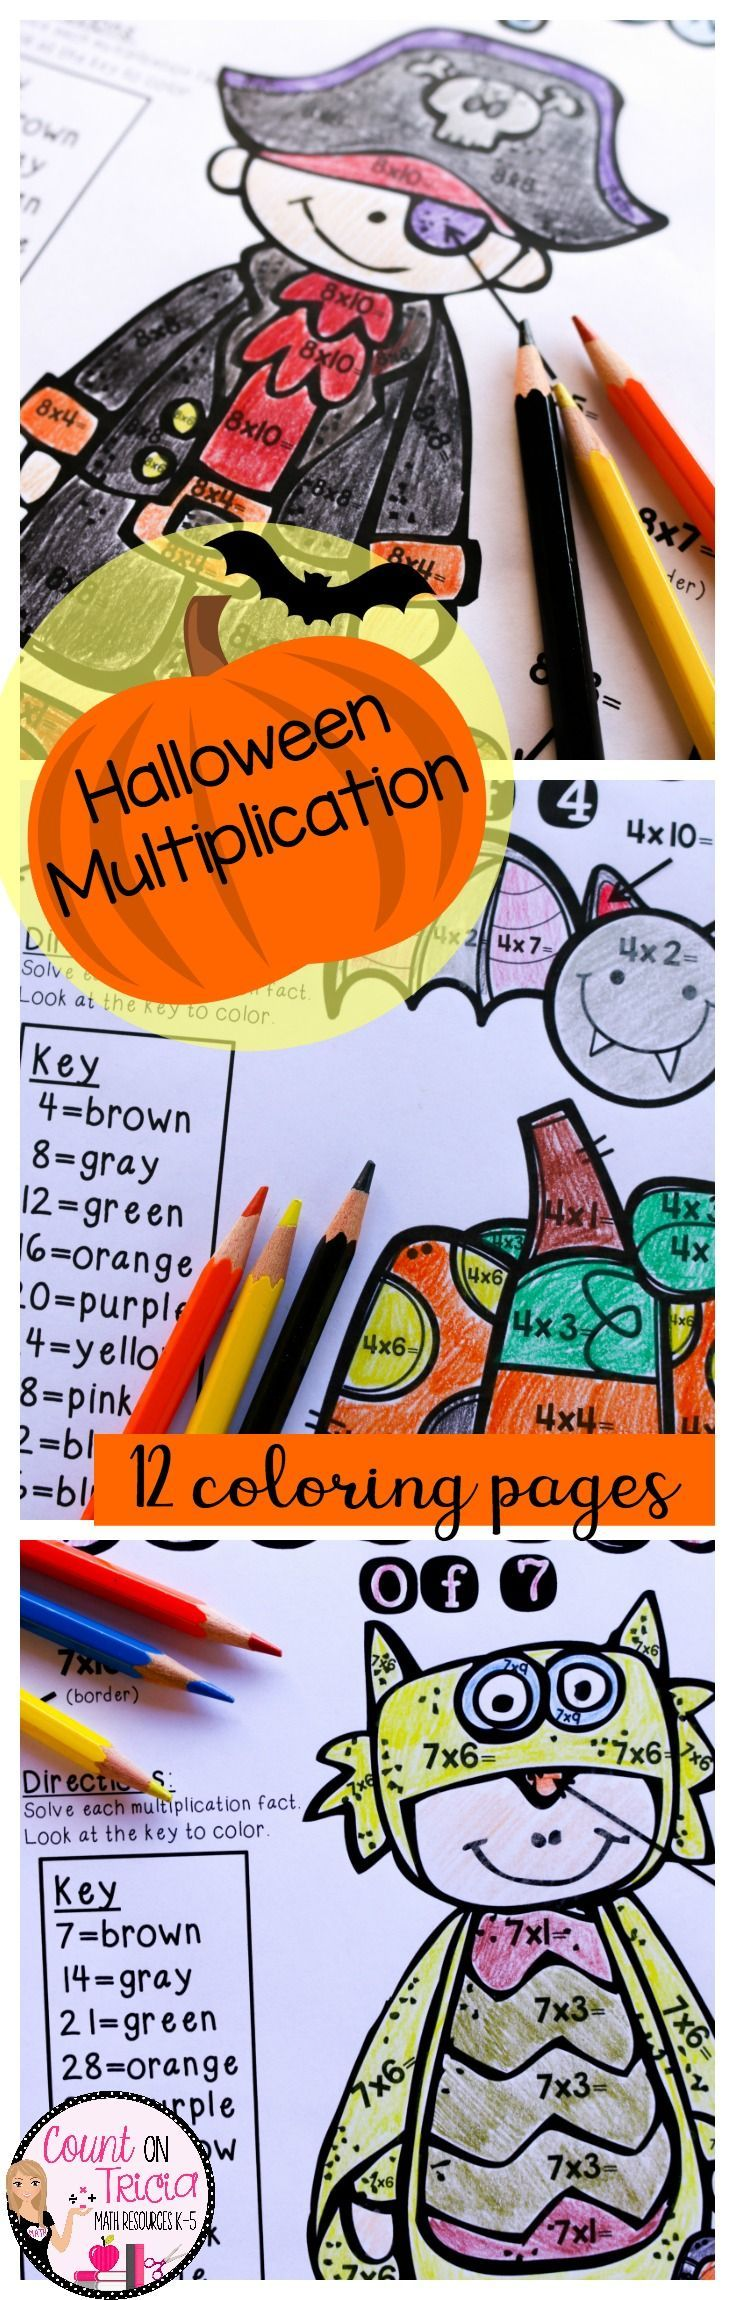 Halloween Multiplication Resources - Great Fun for October ...